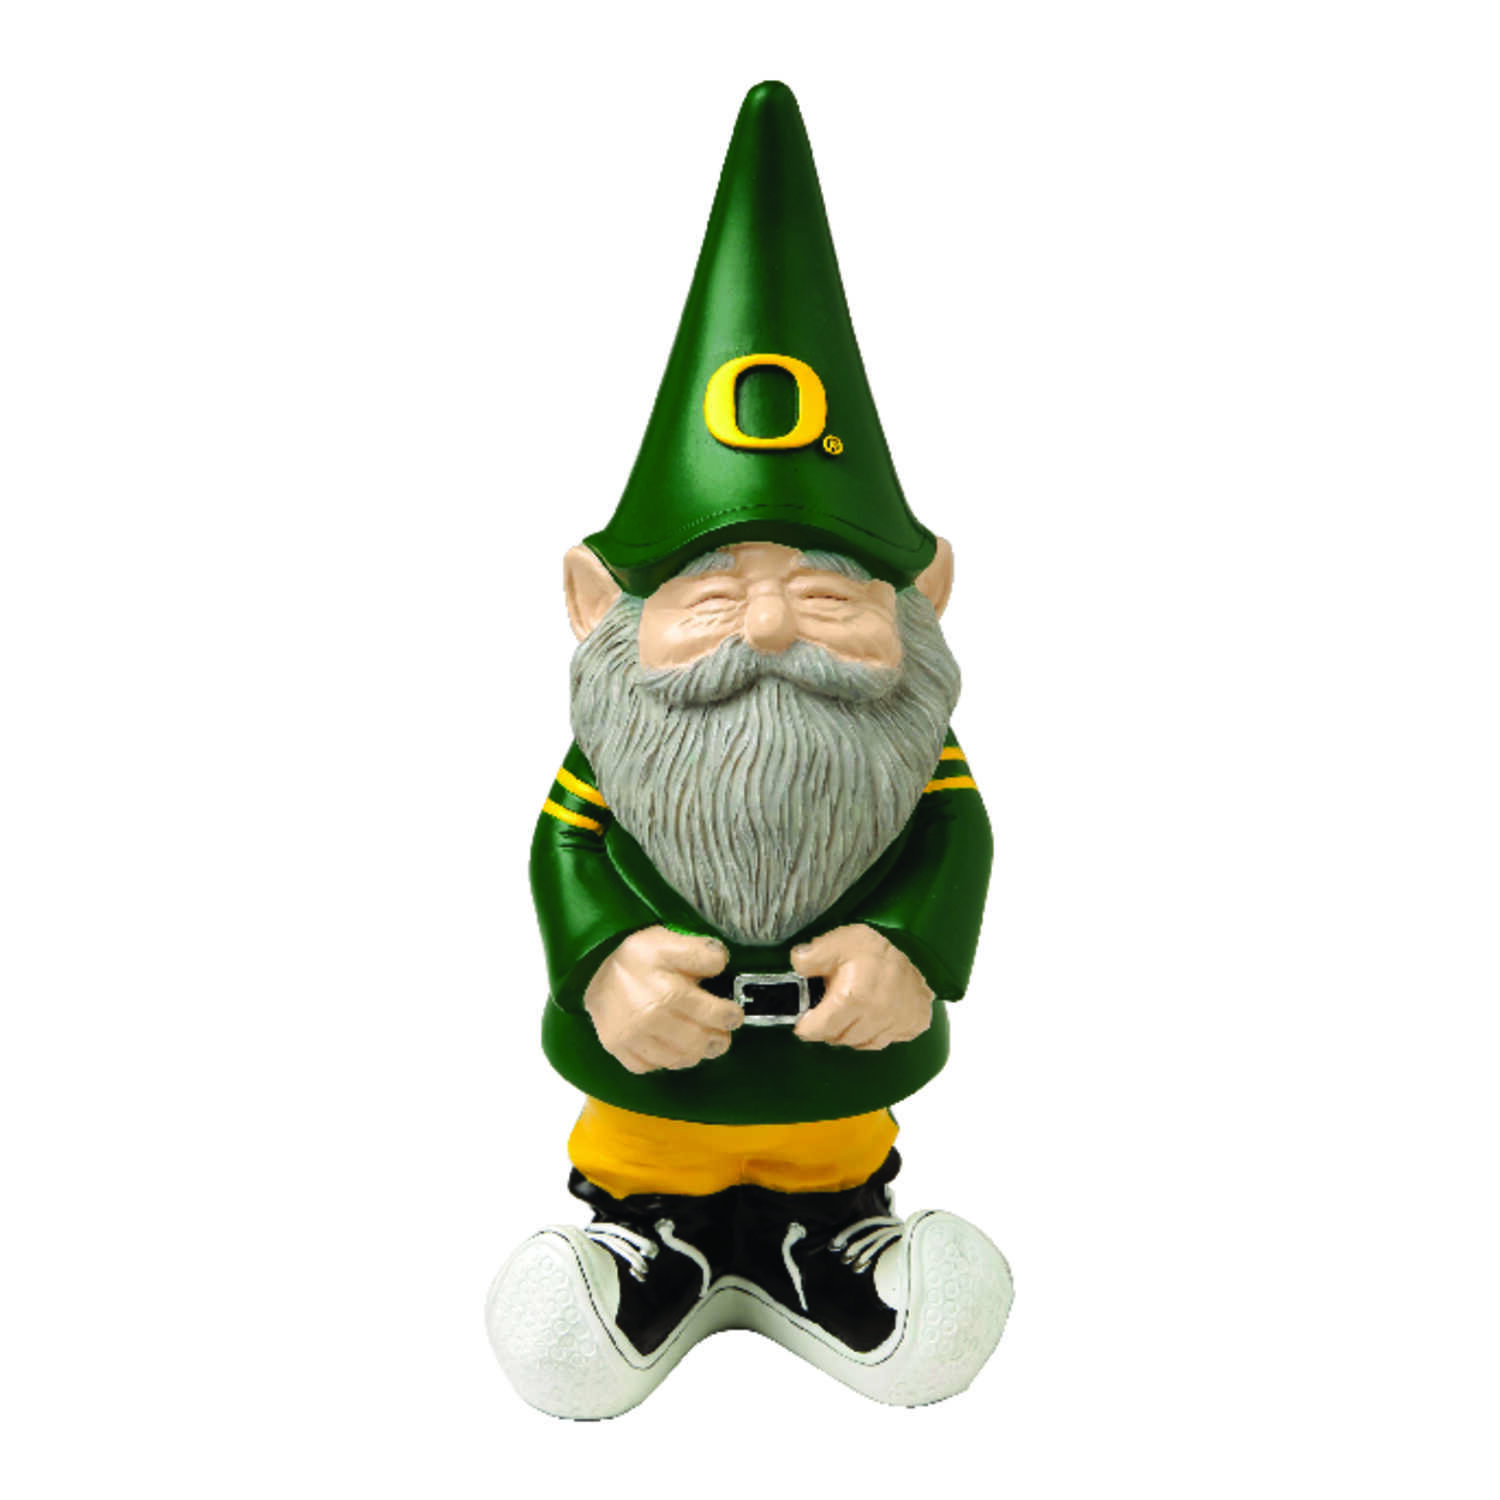 Evergreen  University of Oregon  garden Gnome  Poly Resin  1 pk